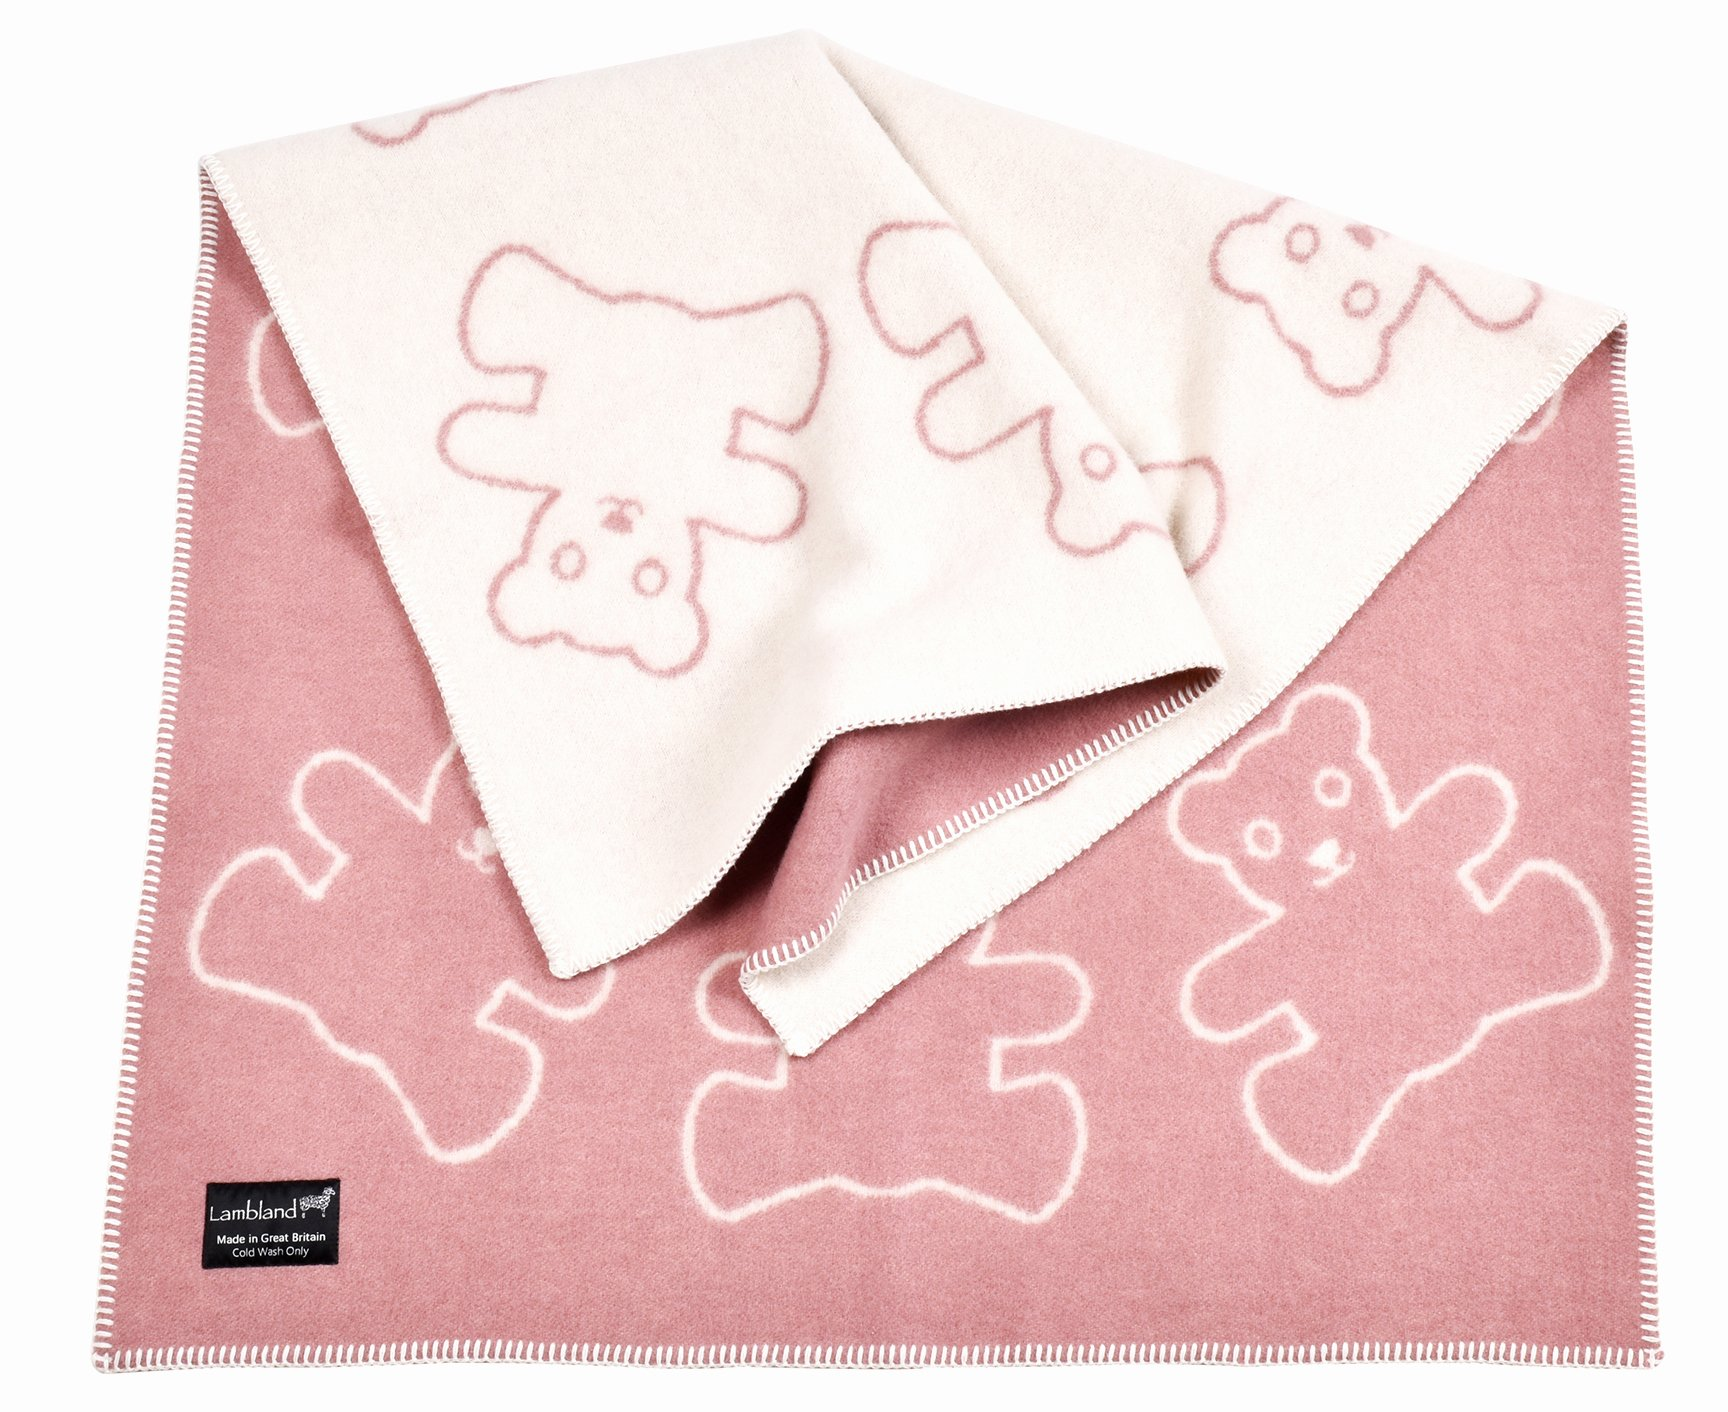 Children's Product Certificate Template Beautiful Pure New Wool Children S Throw Blanket Snuggie Teddy Bear